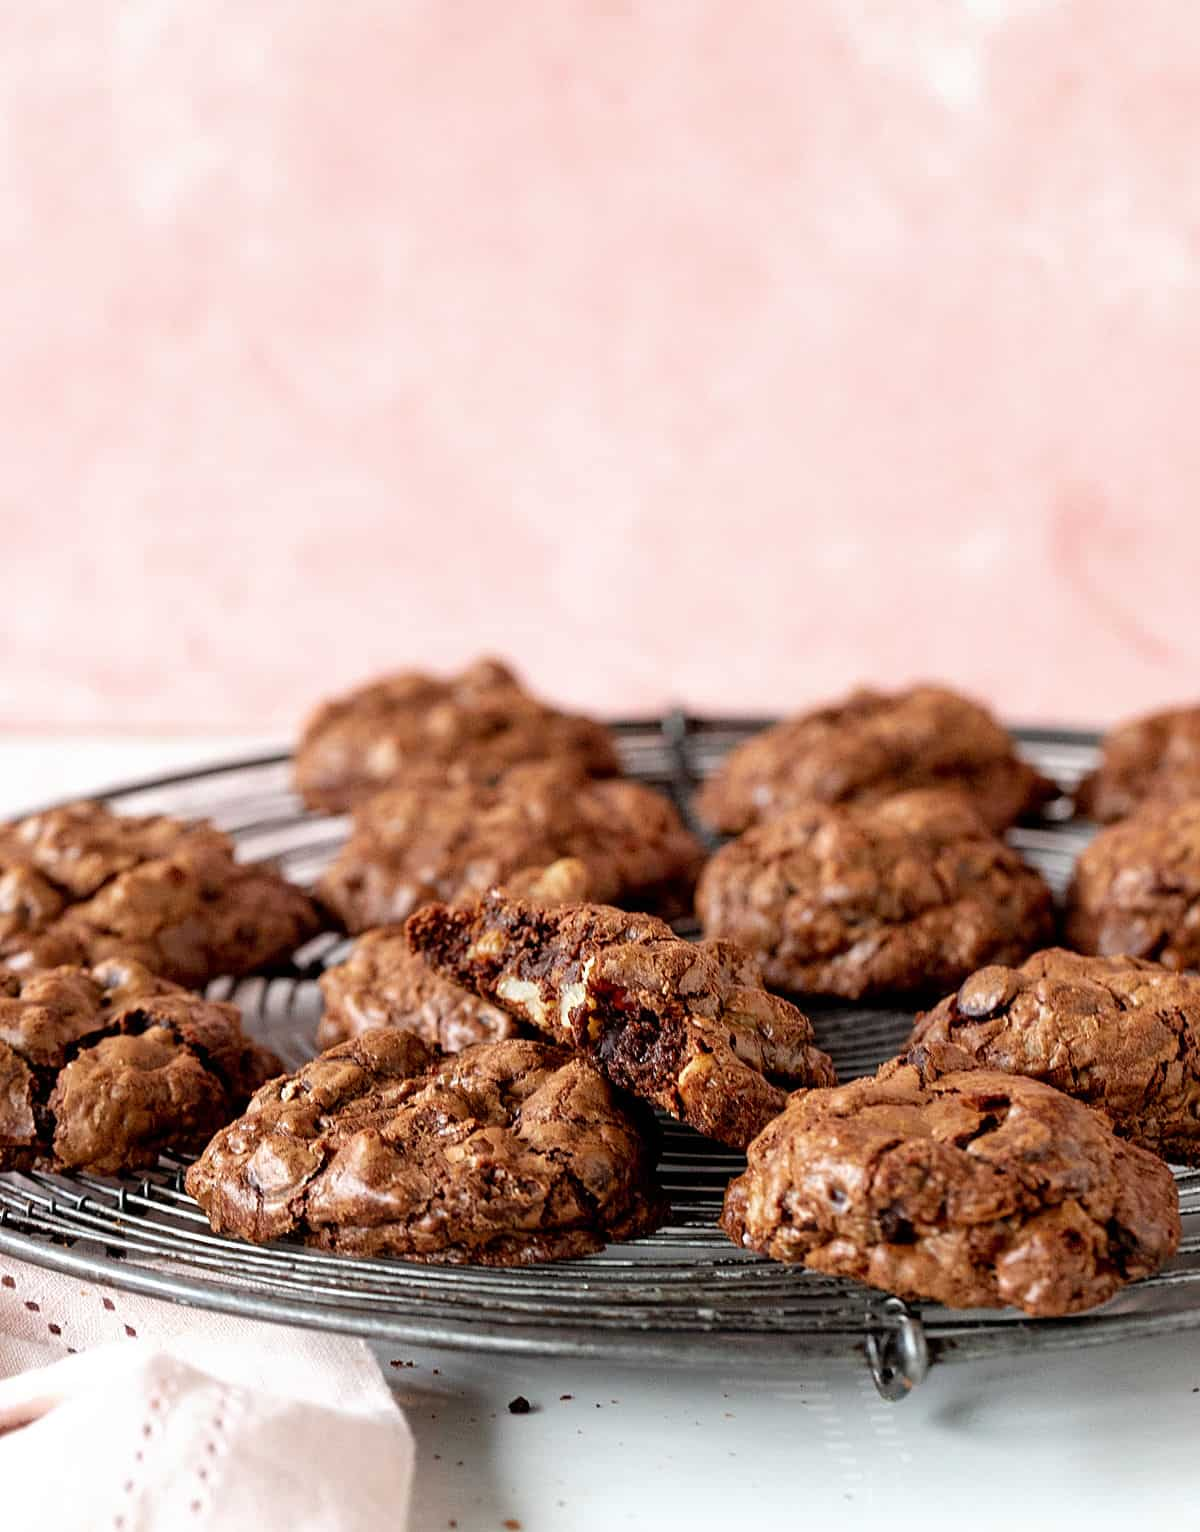 Pink background with chocolate cookies on wire rack